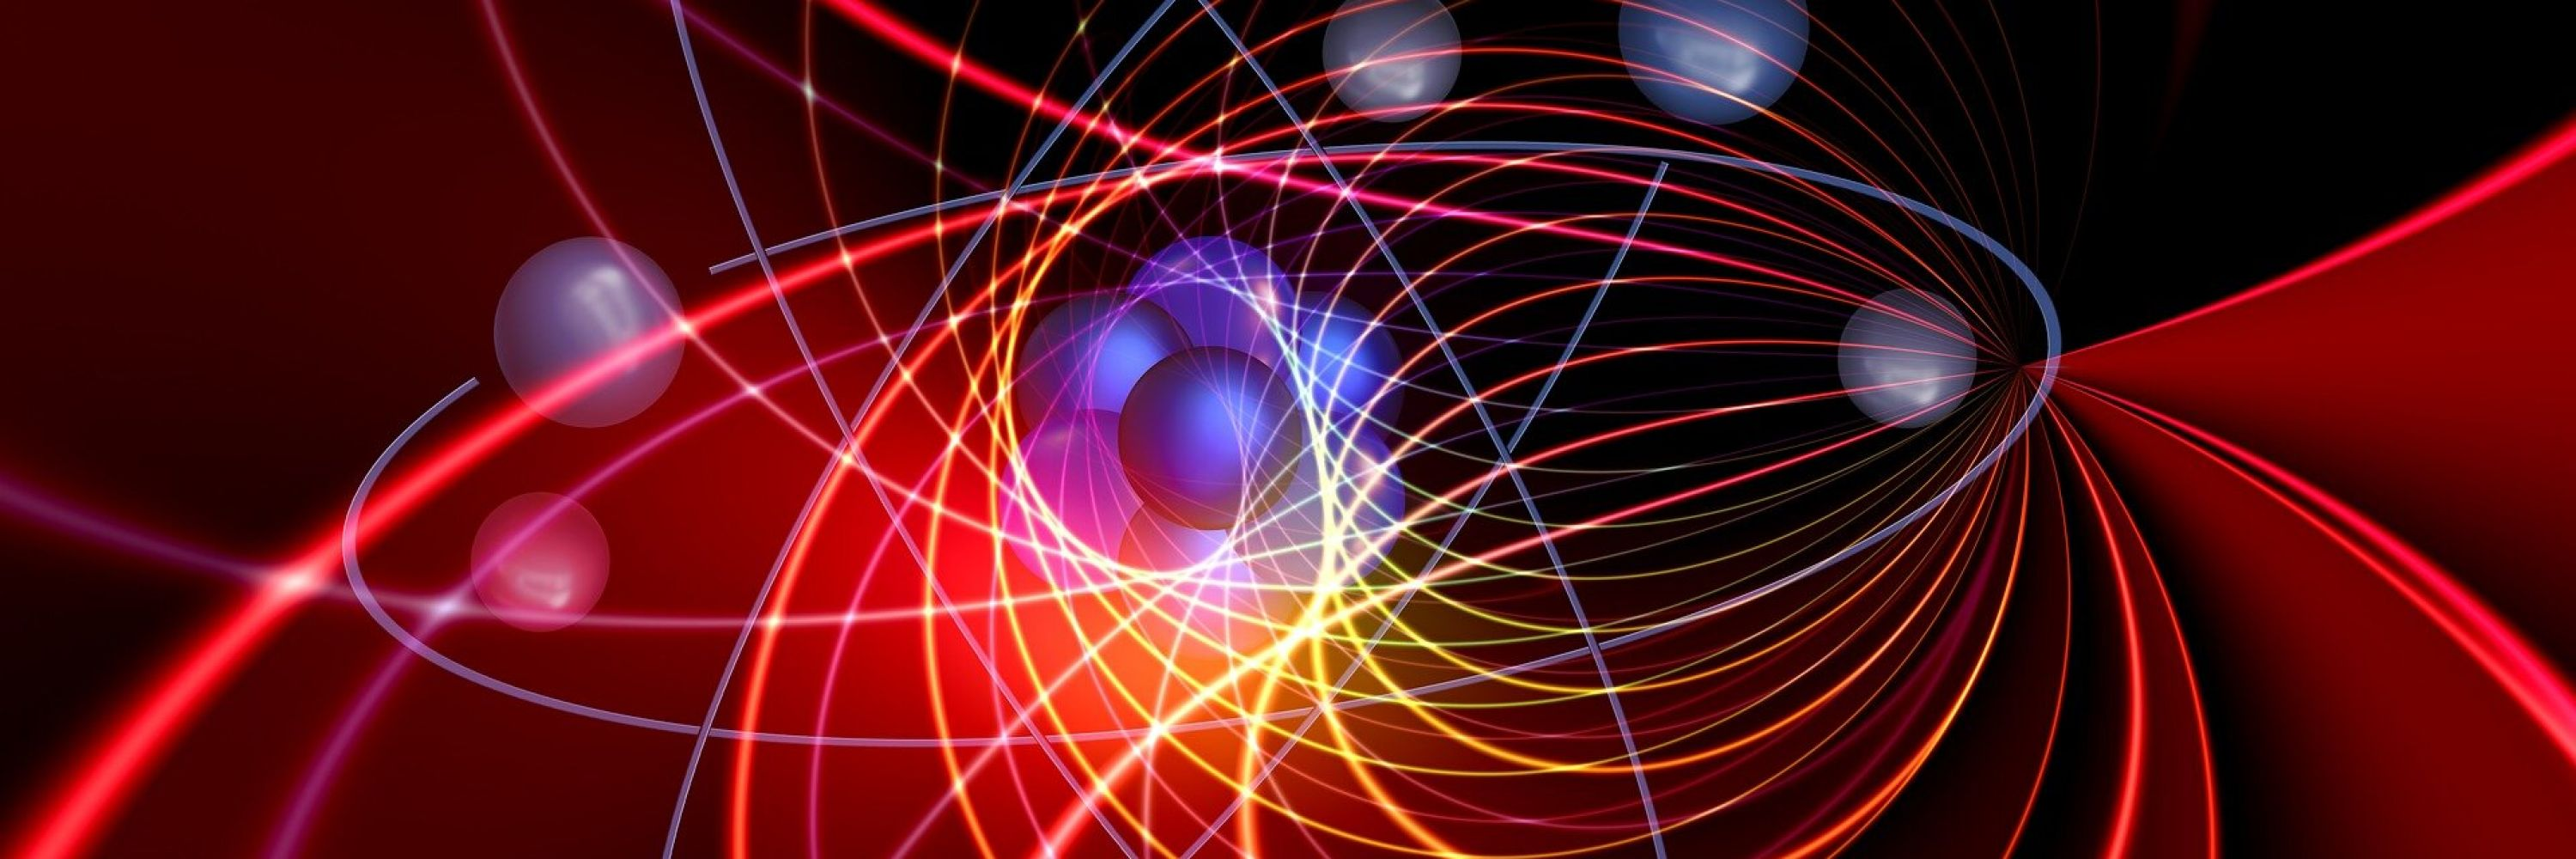 Electrons May Very Well Be Conscious